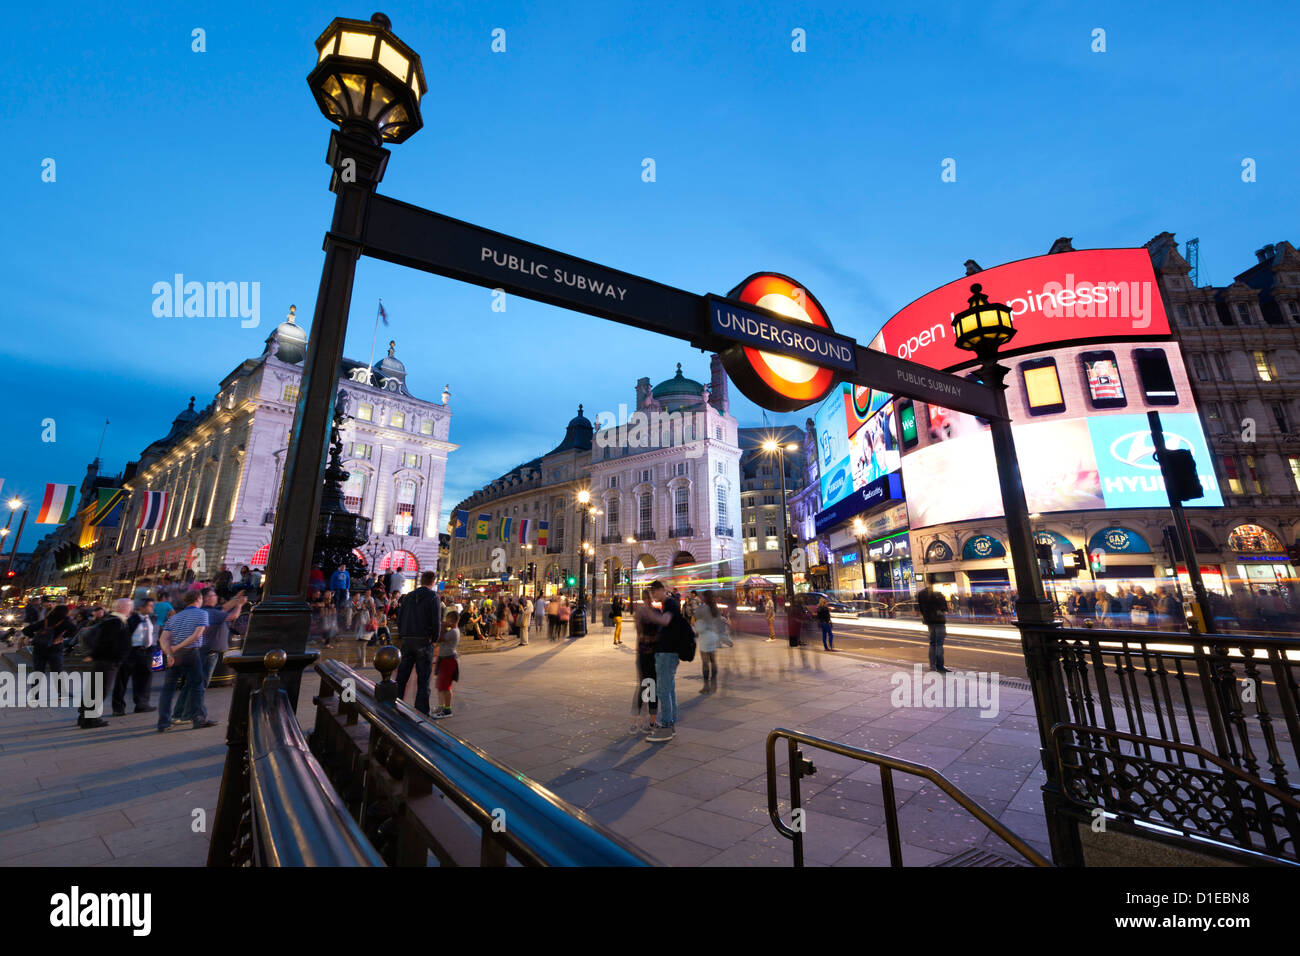 Piccadilly Circus, London, England, United Kingdom, Europe - Stock Image